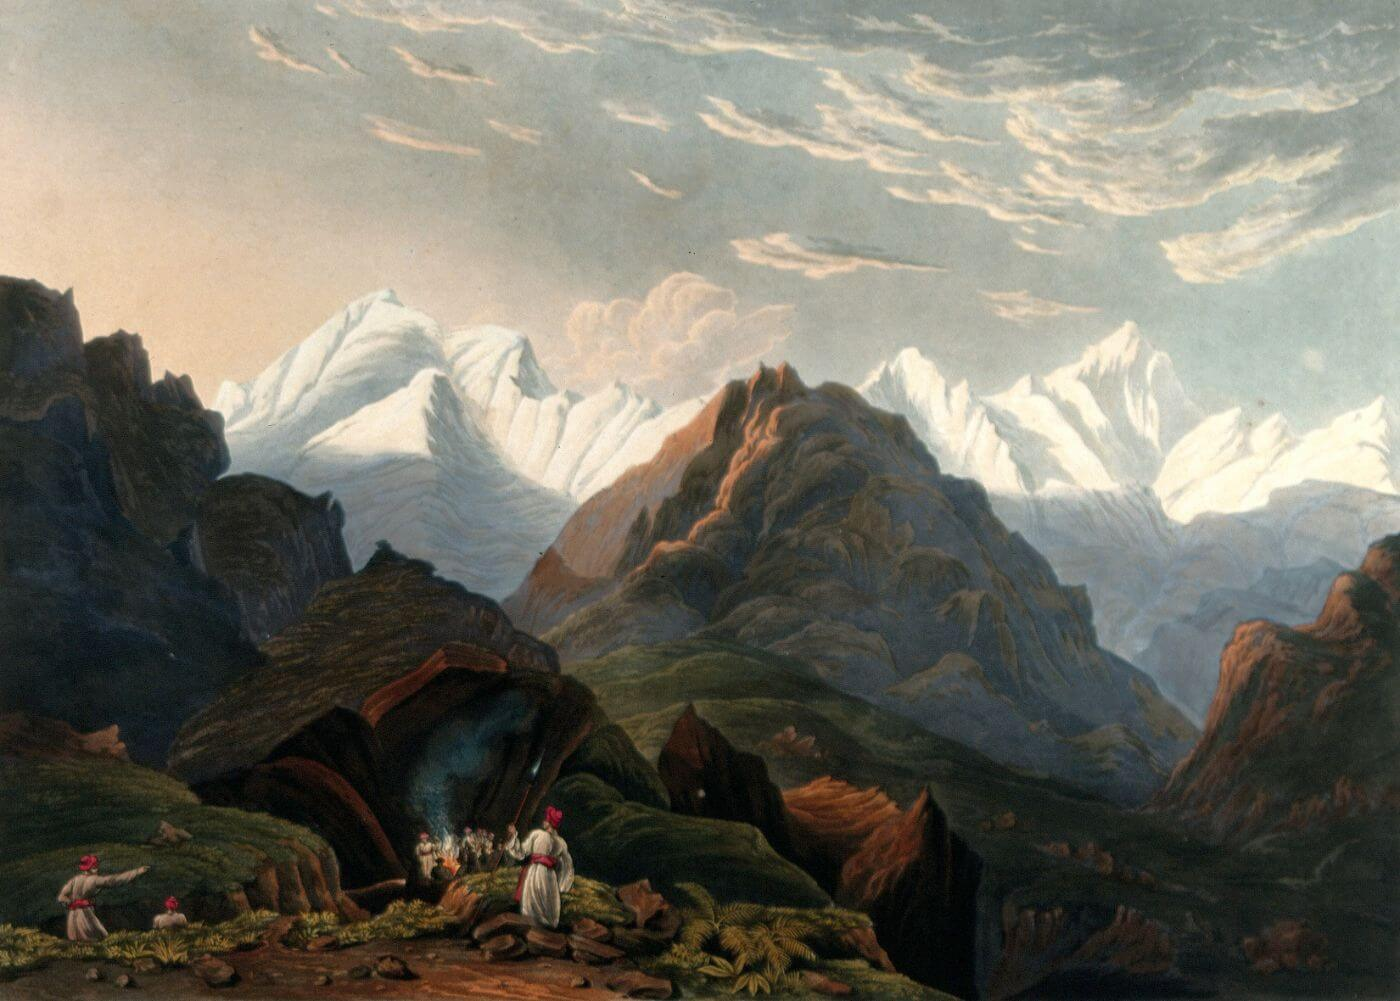 View of the mountains - James Baillie Fraser c 1826 Vintage Orientalist Aquatint Painting of India - Posters